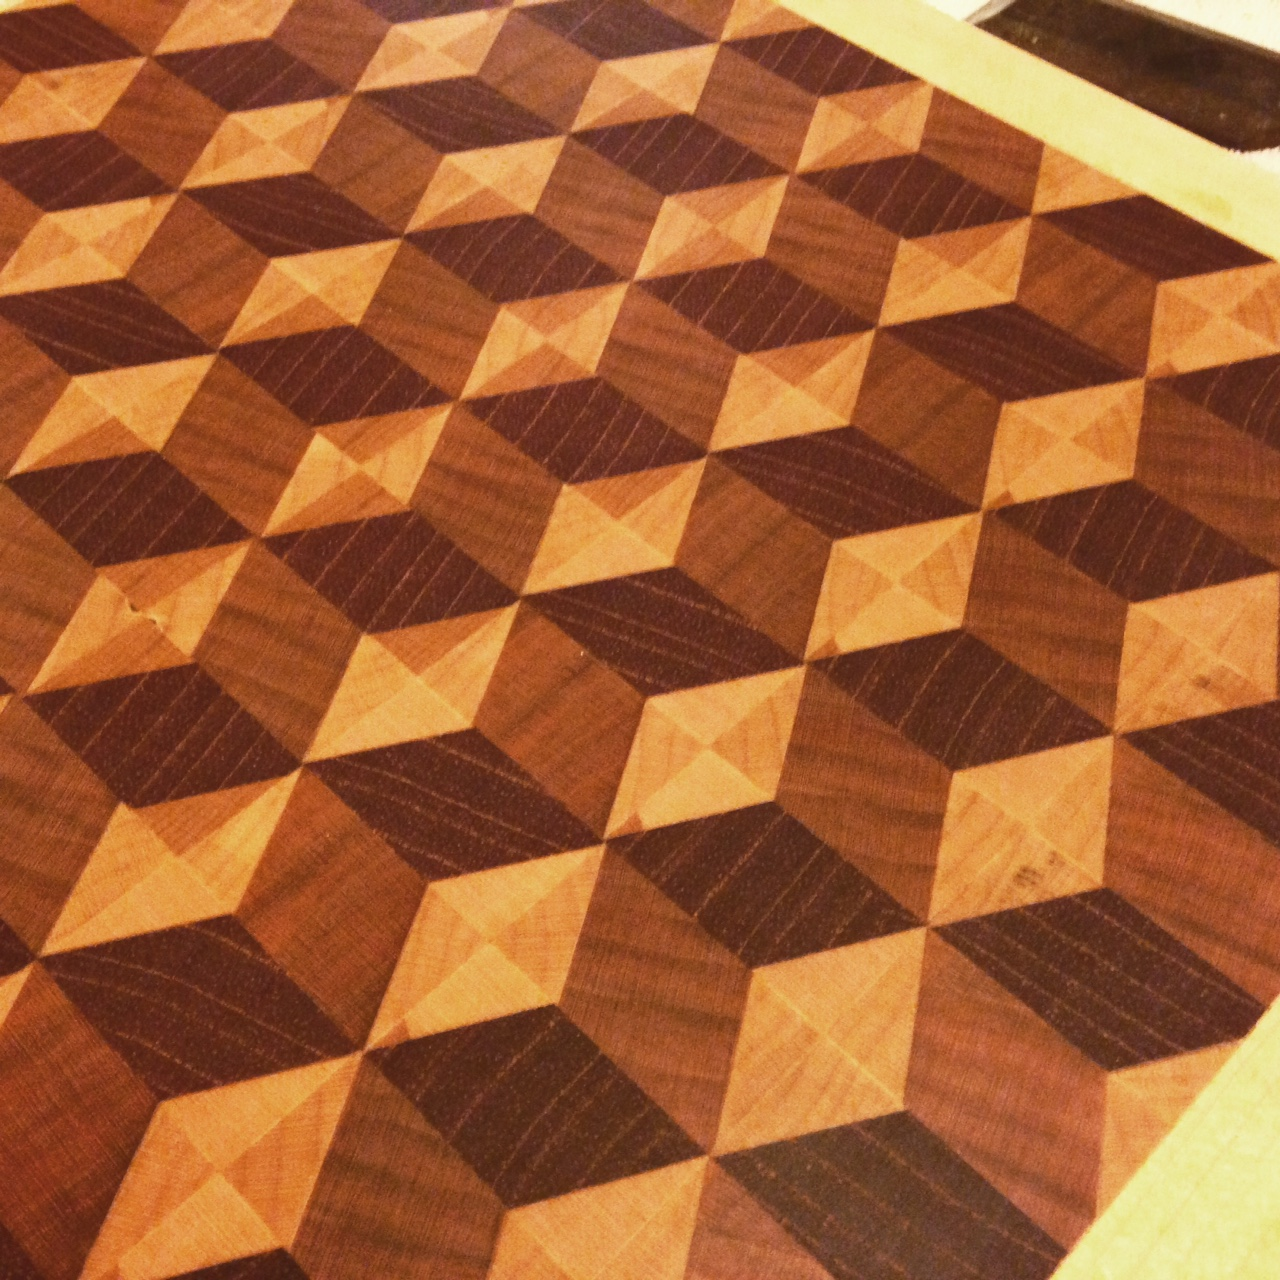 Interesting 3D pattern endgrain cutting board. Cherry, maple, Spanish cedar.